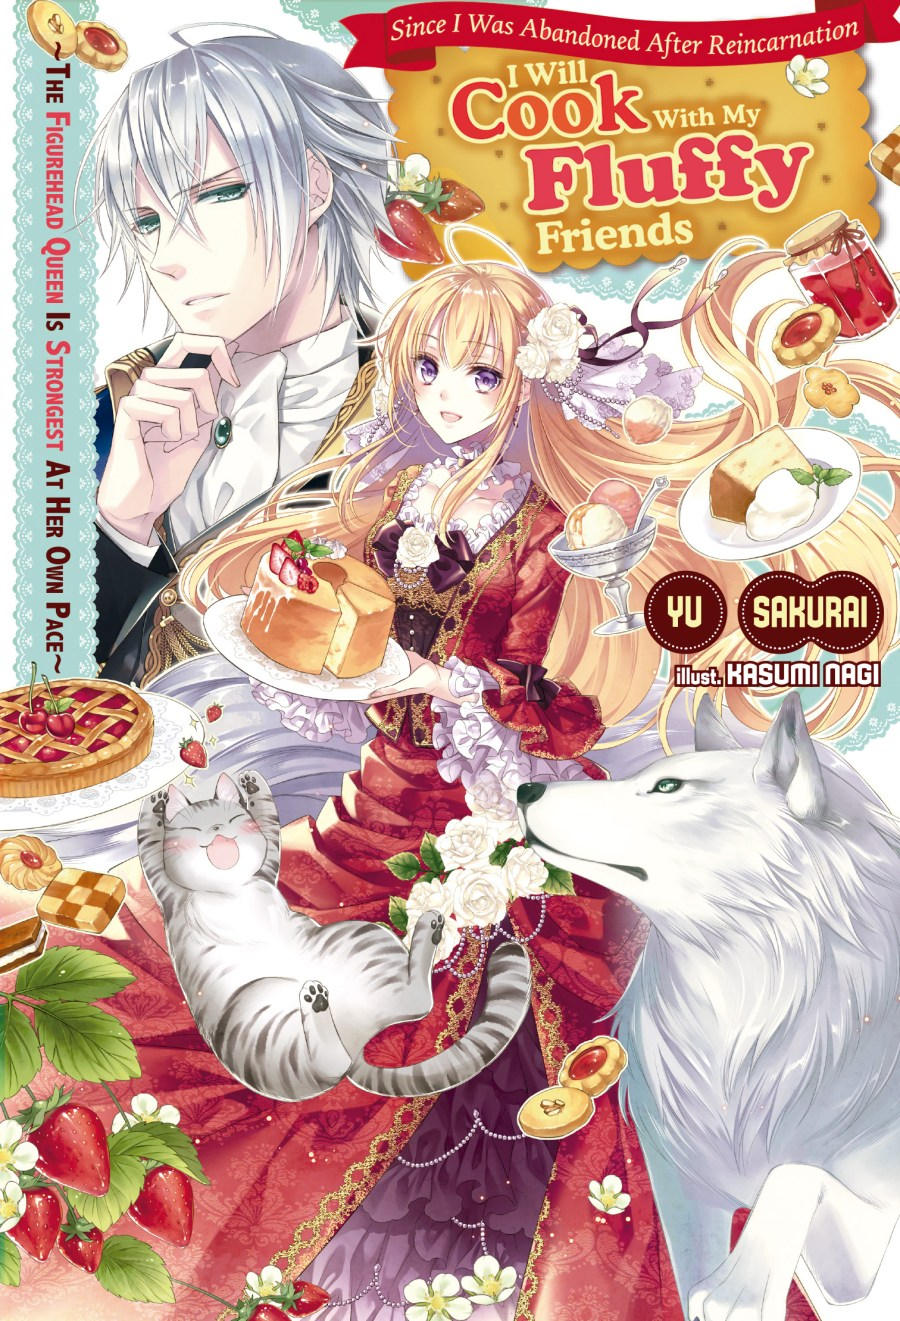 Since I Was Abandoned After Reincarnating, I Will Cook With My Fluffy Friends Volume 1 Cover